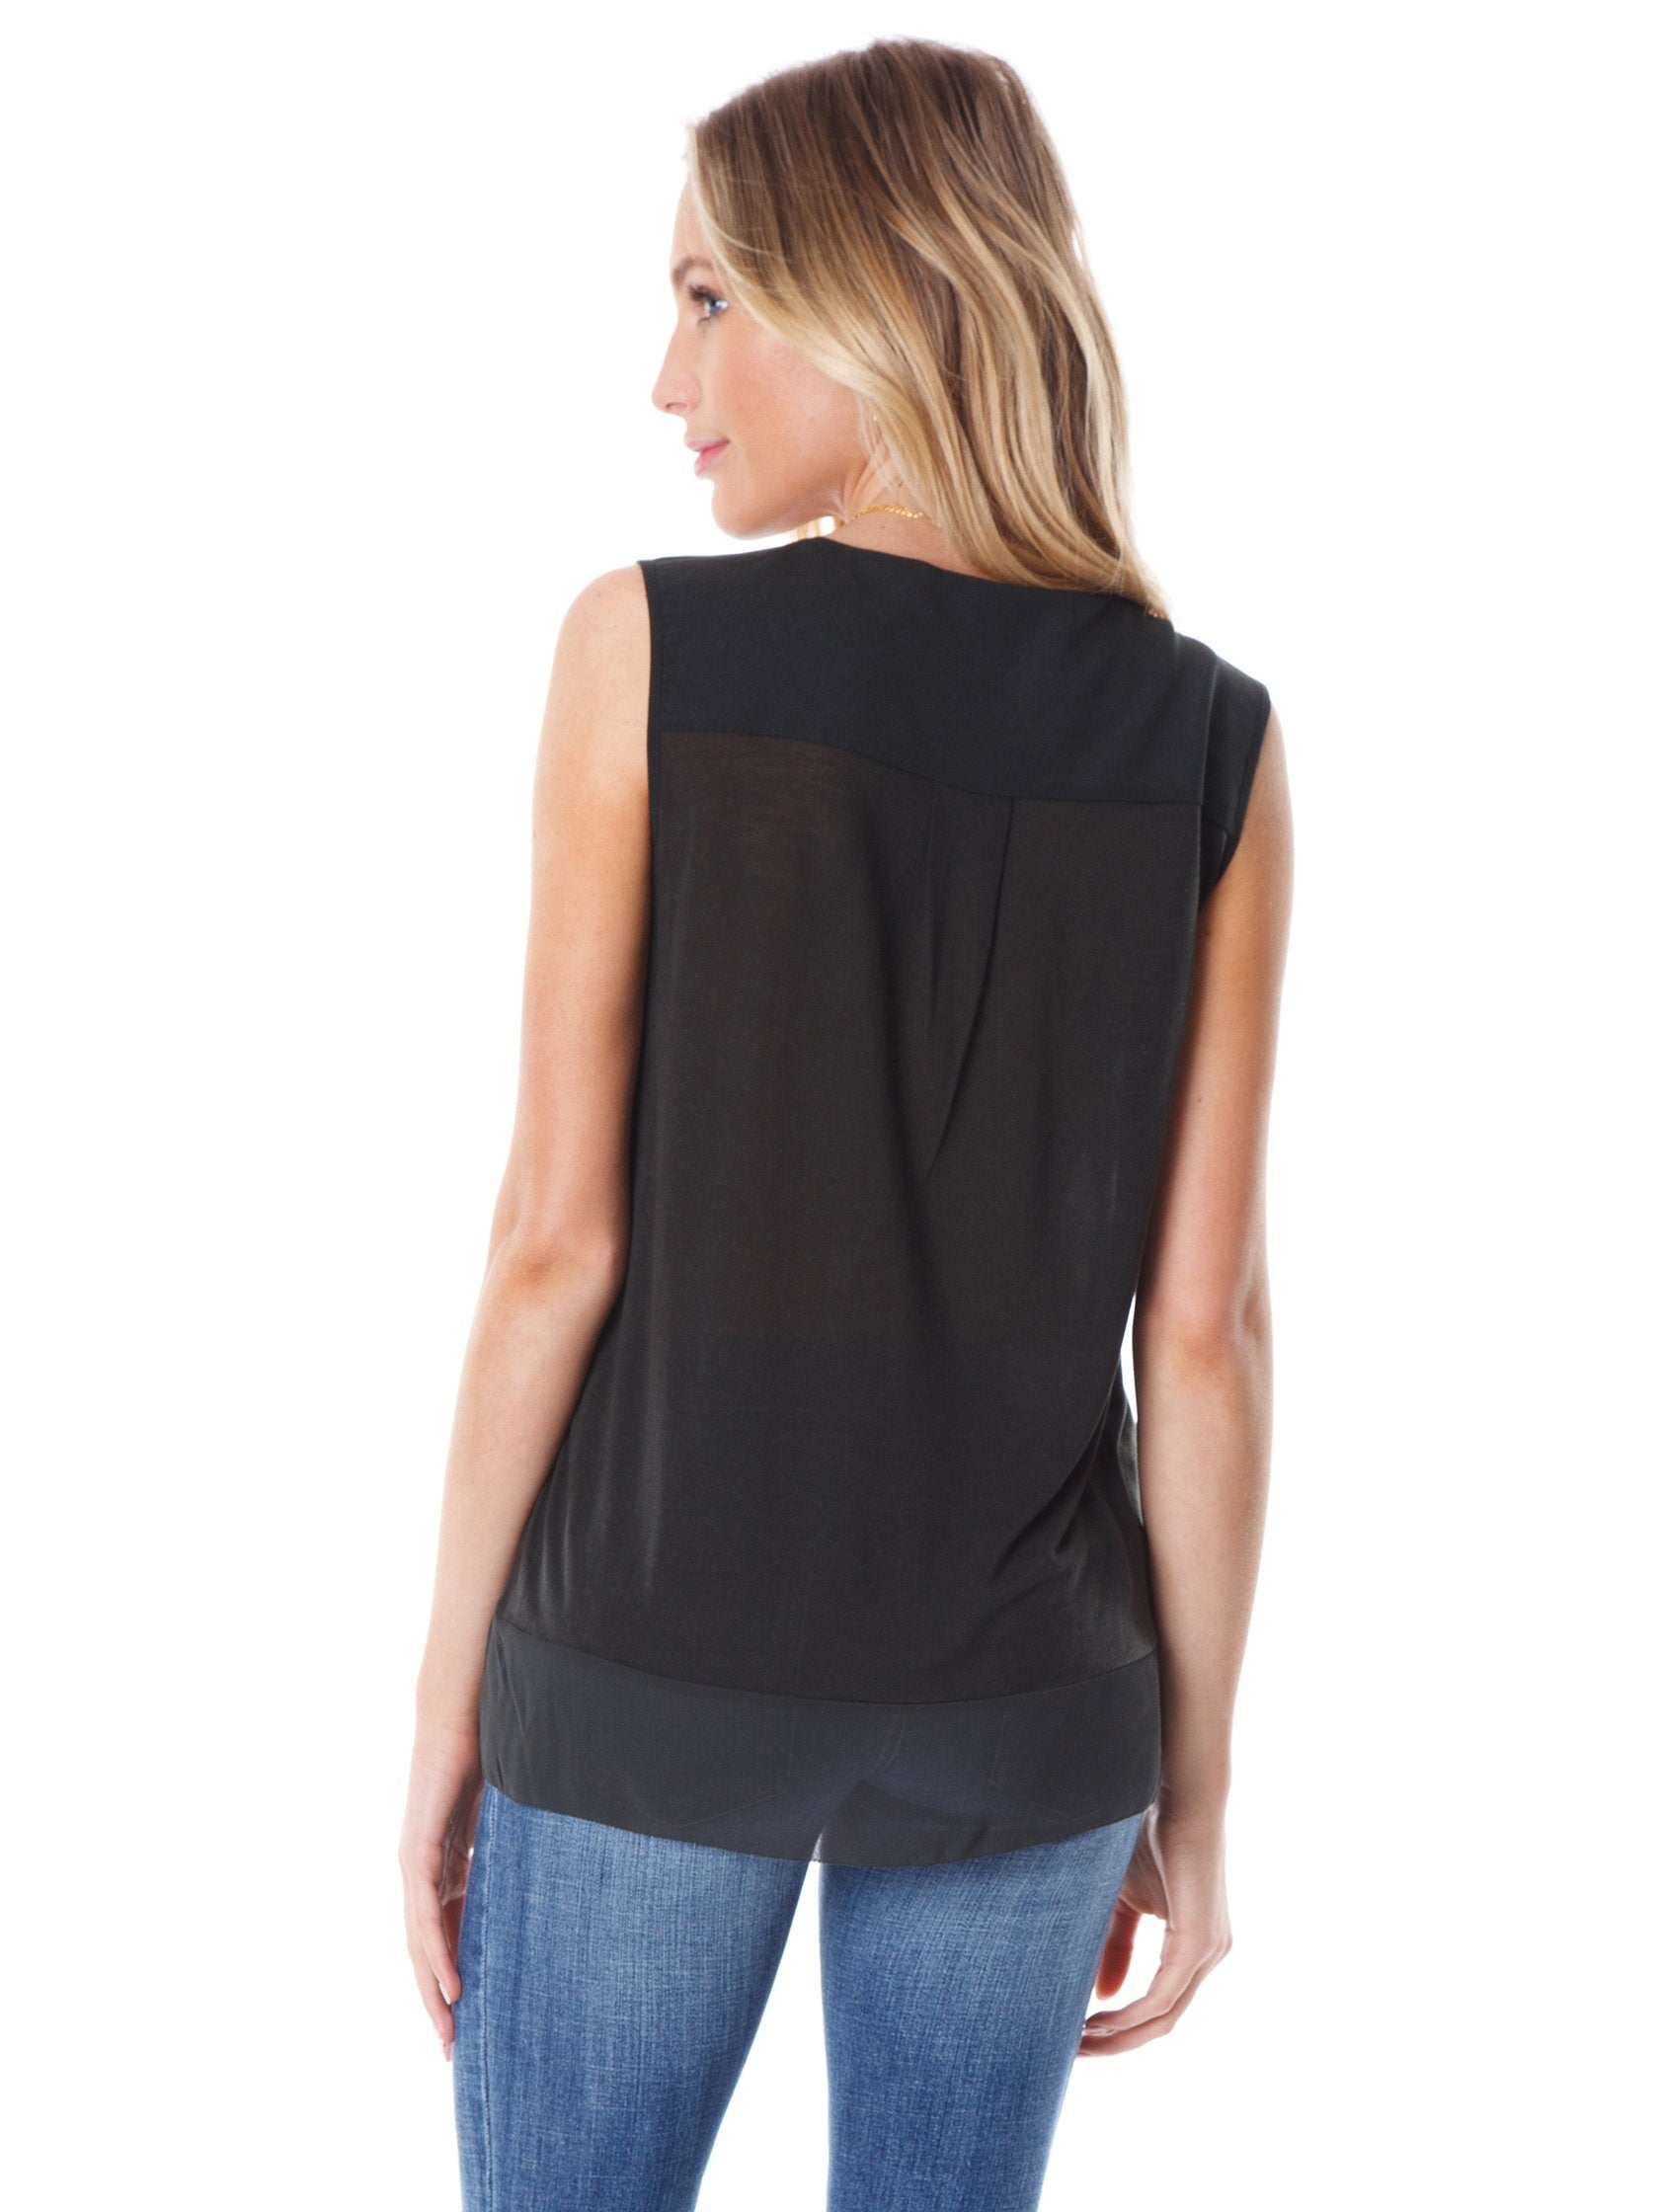 Women outfit in a top rental from French Connection called Classic Crepe Light Sleeveless Top